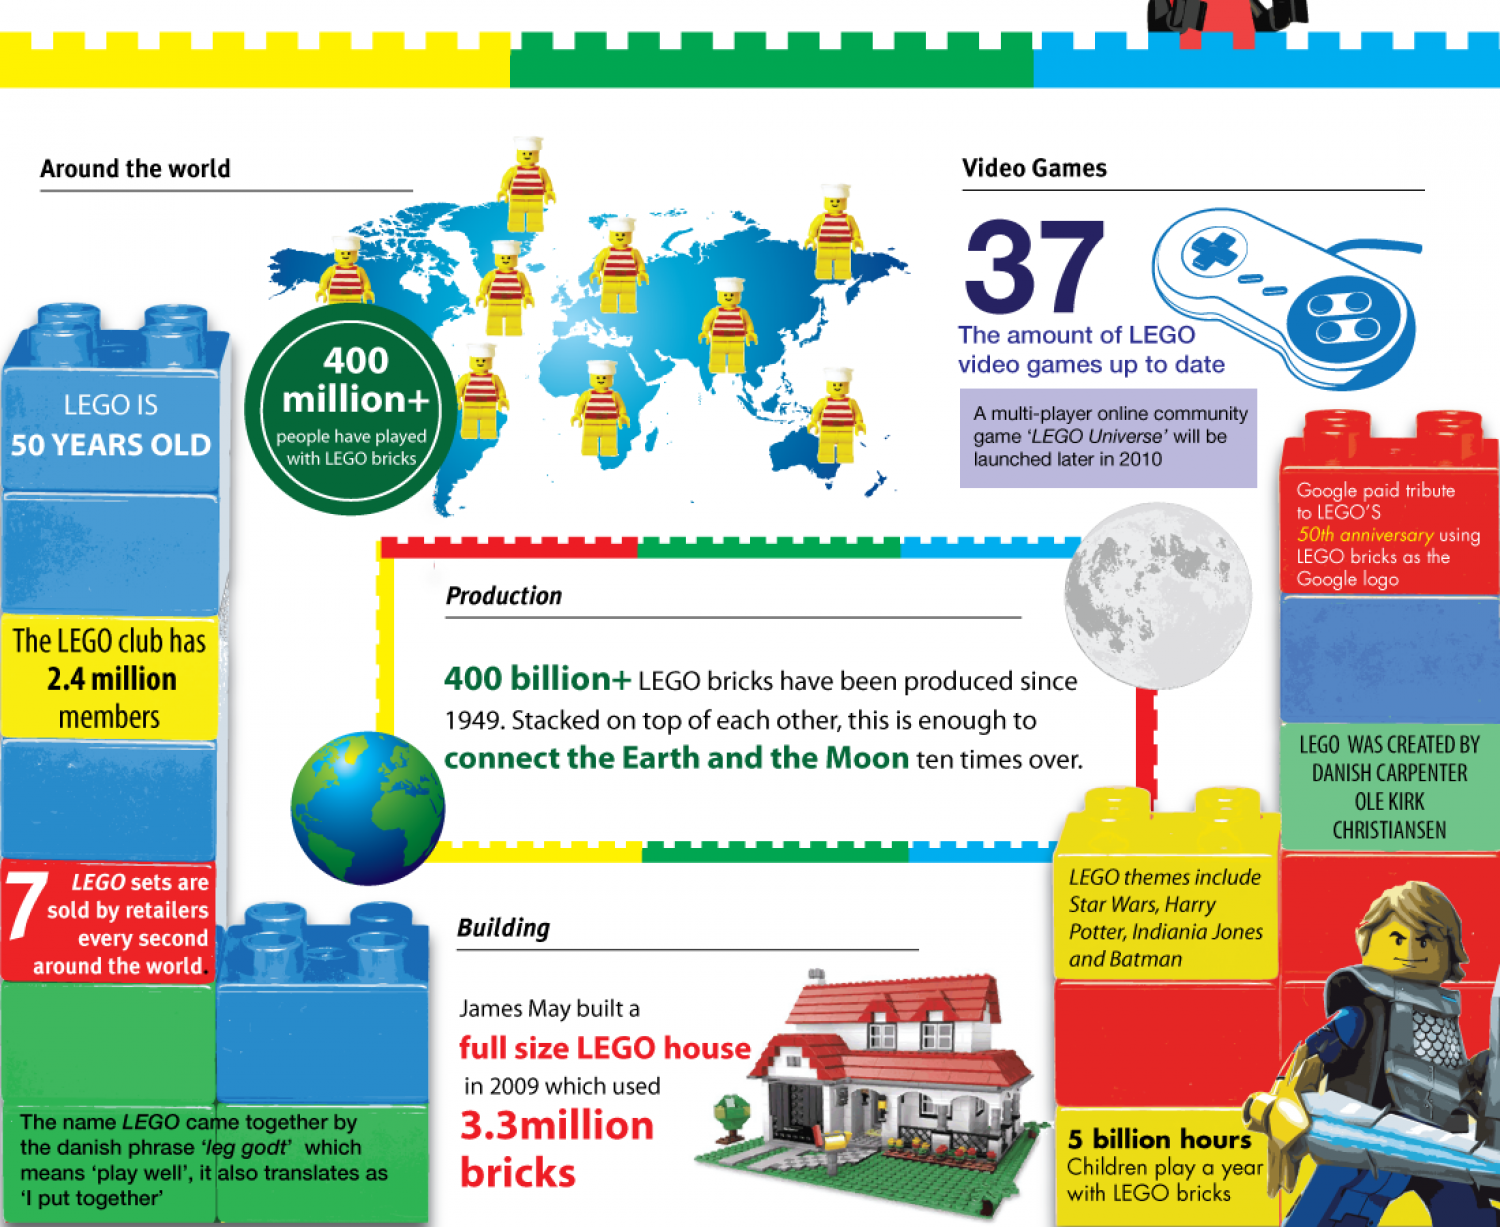 Lego is 50 years old Infographic